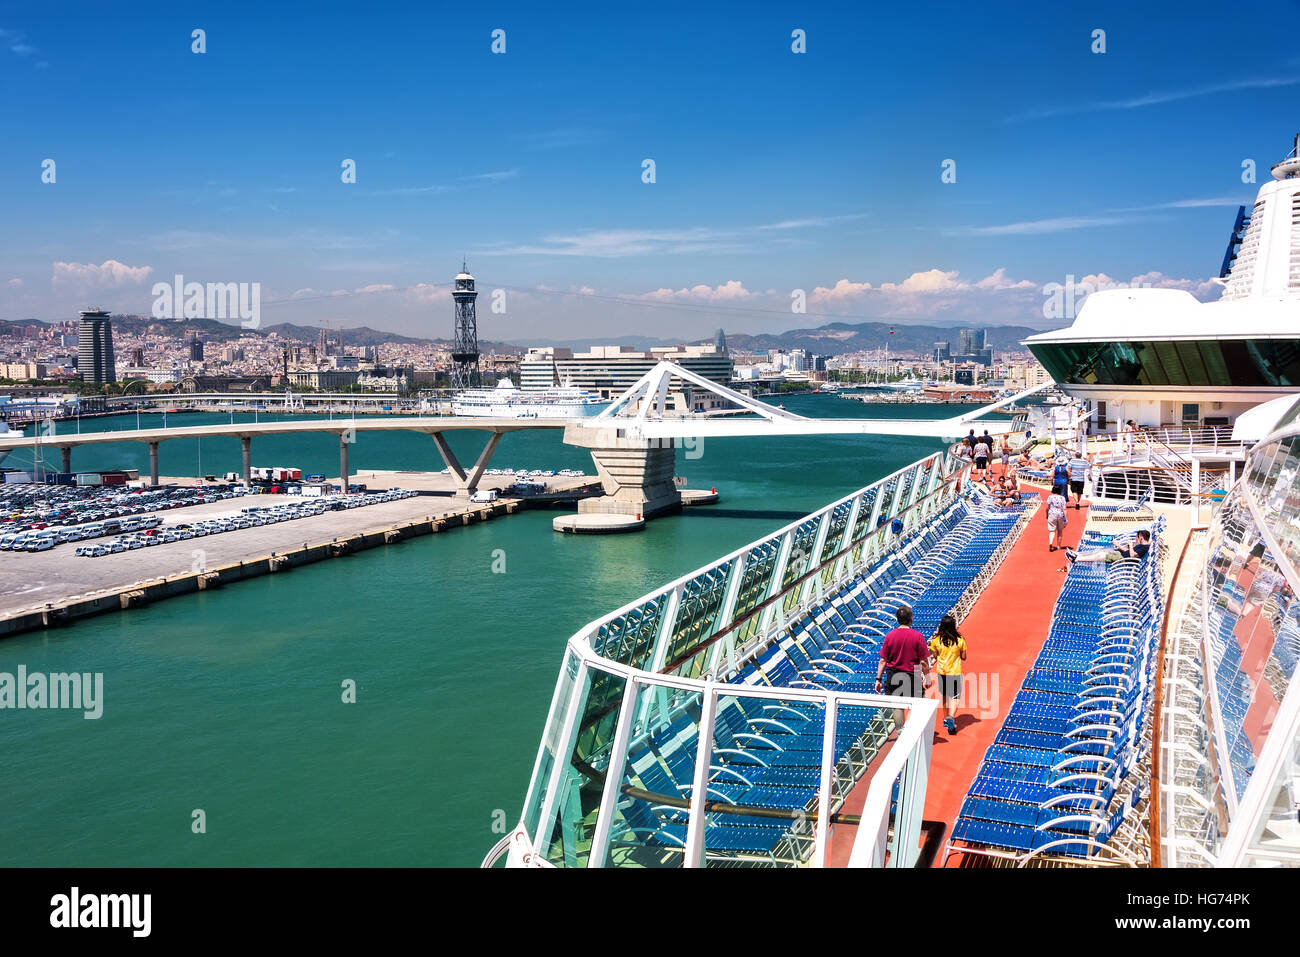 Cruise ship passengers stroll around the Lido Deck on a cruise ship anchored in port in Barcelona, Spain. - Stock Image